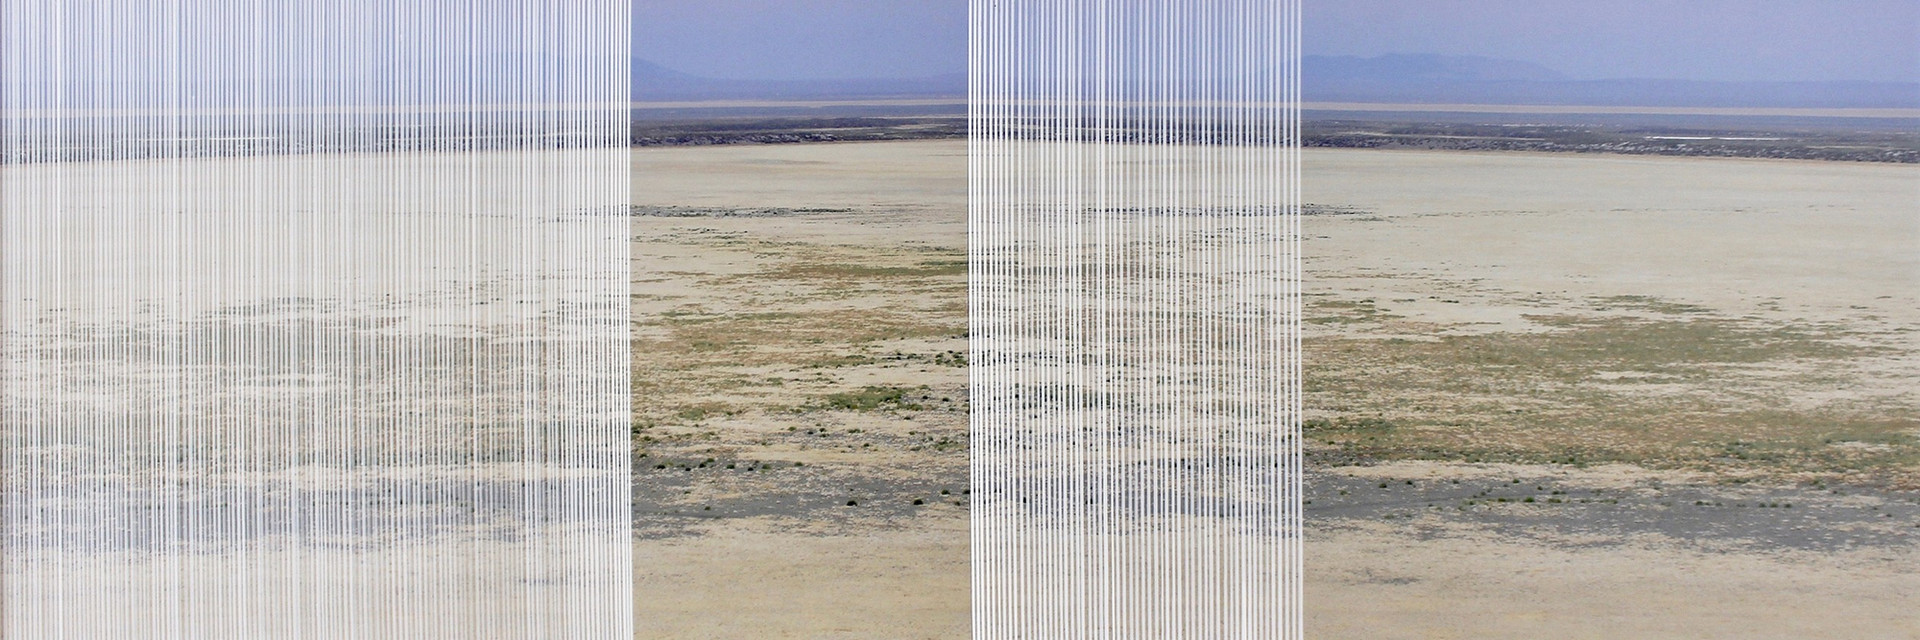 nowhere/now here (dry valley), acrylic, photographs printed on aluminum, 20 x 60 inches